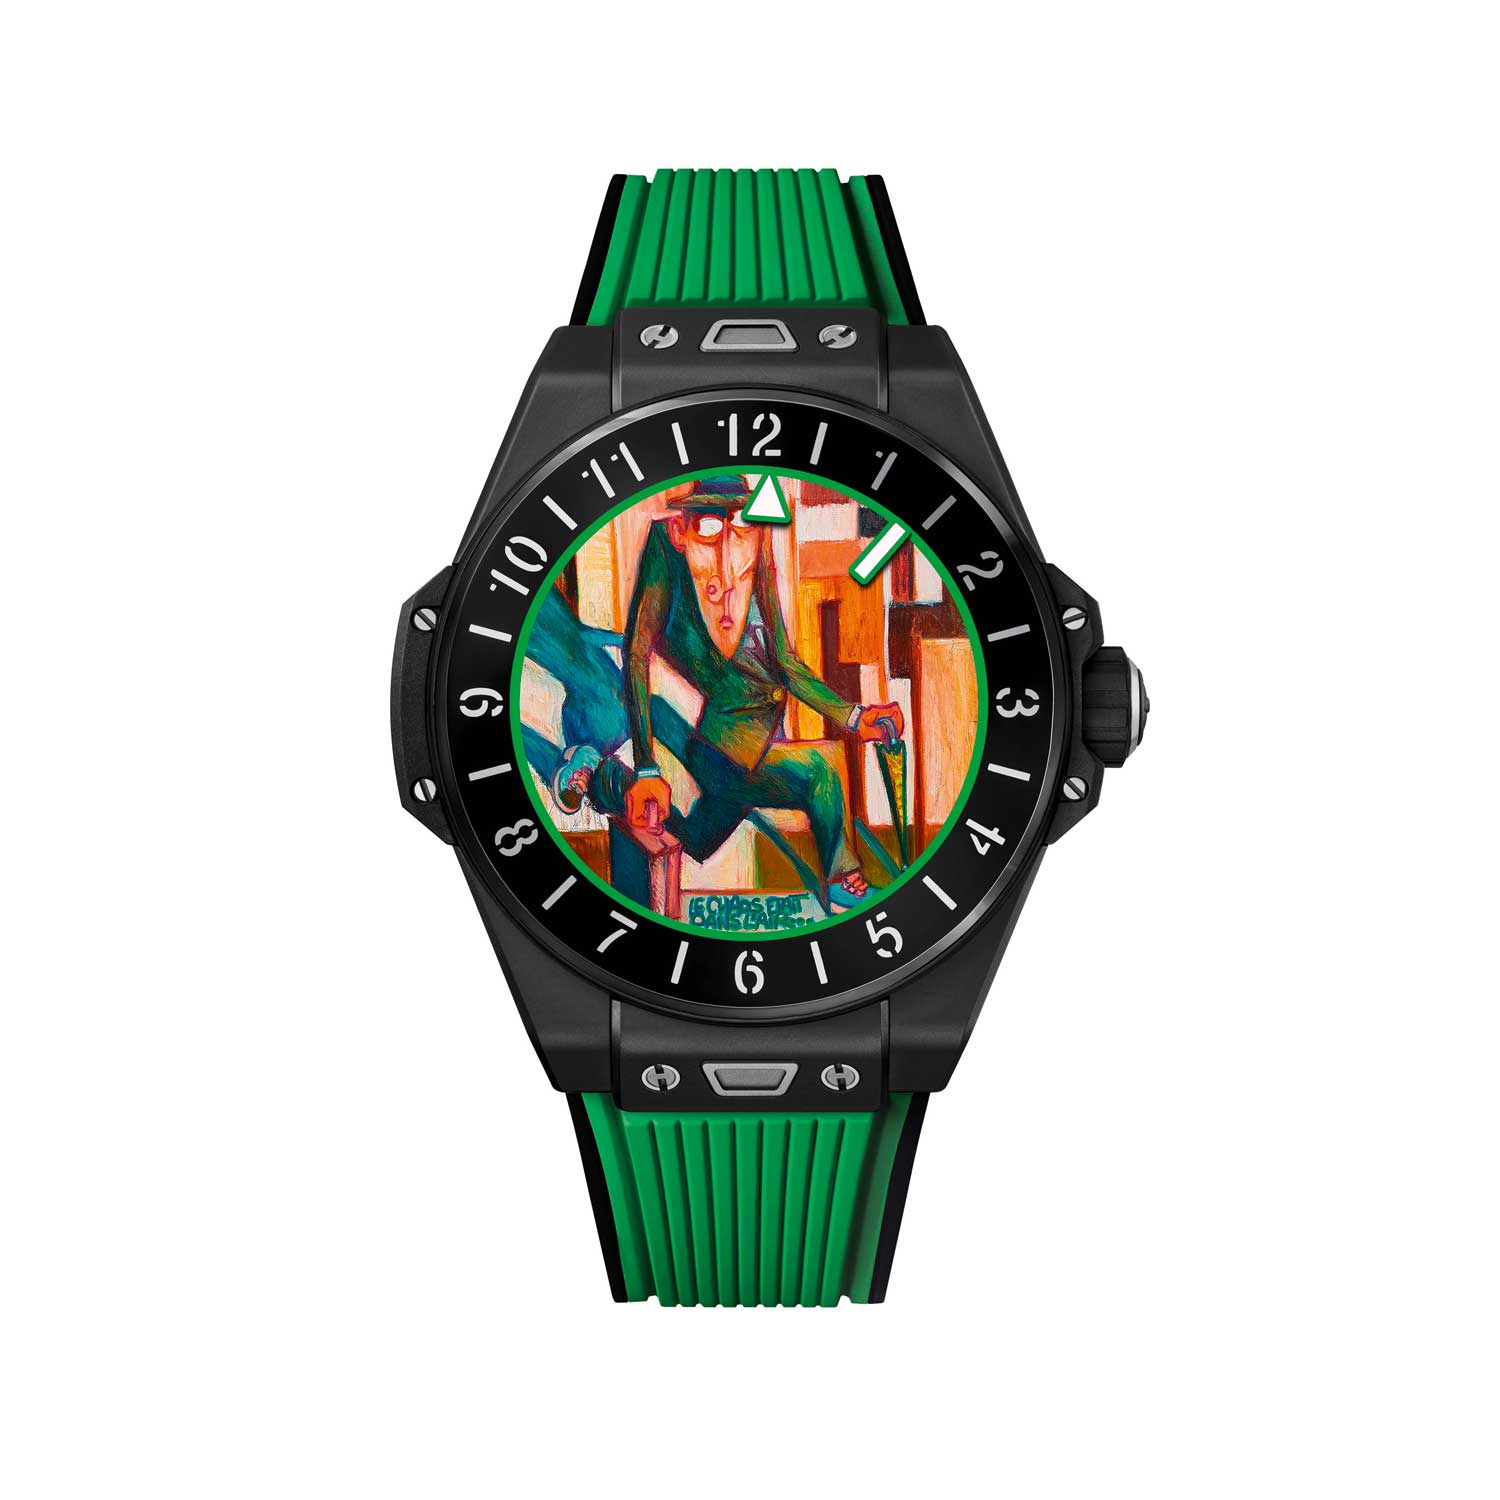 Lucky Green dial designed by Marc Ferrero for the Big Bang E